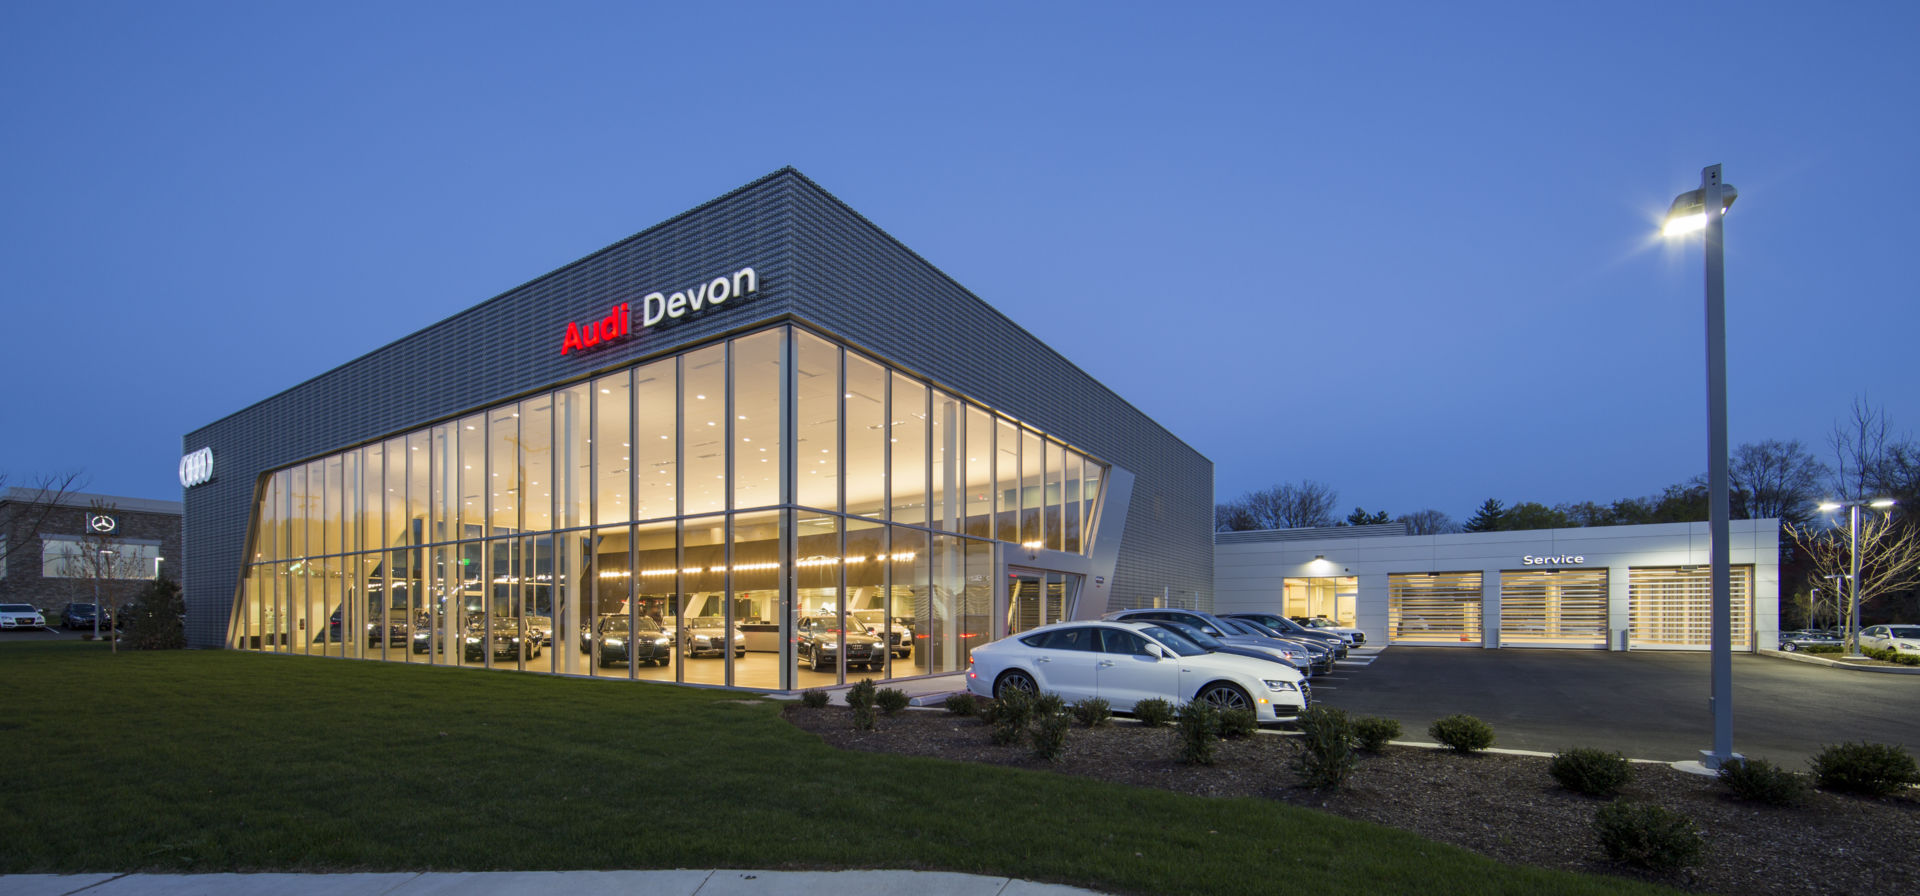 Audi Salesroom in Devon